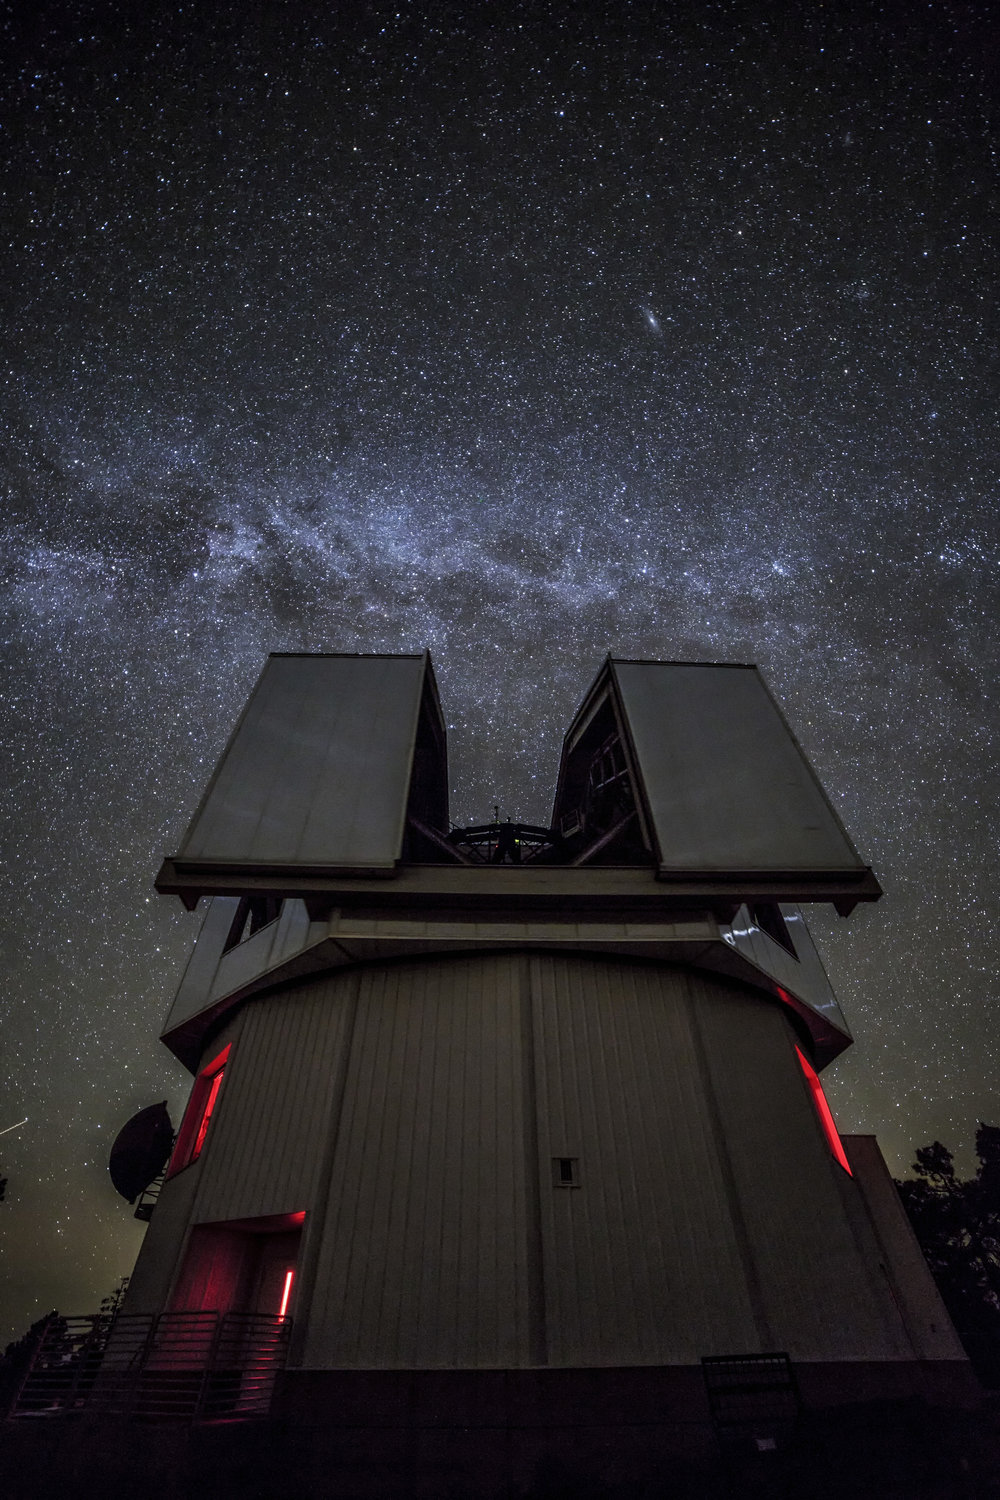 The Discovery Channel Telescope. Image Credit: Michael West